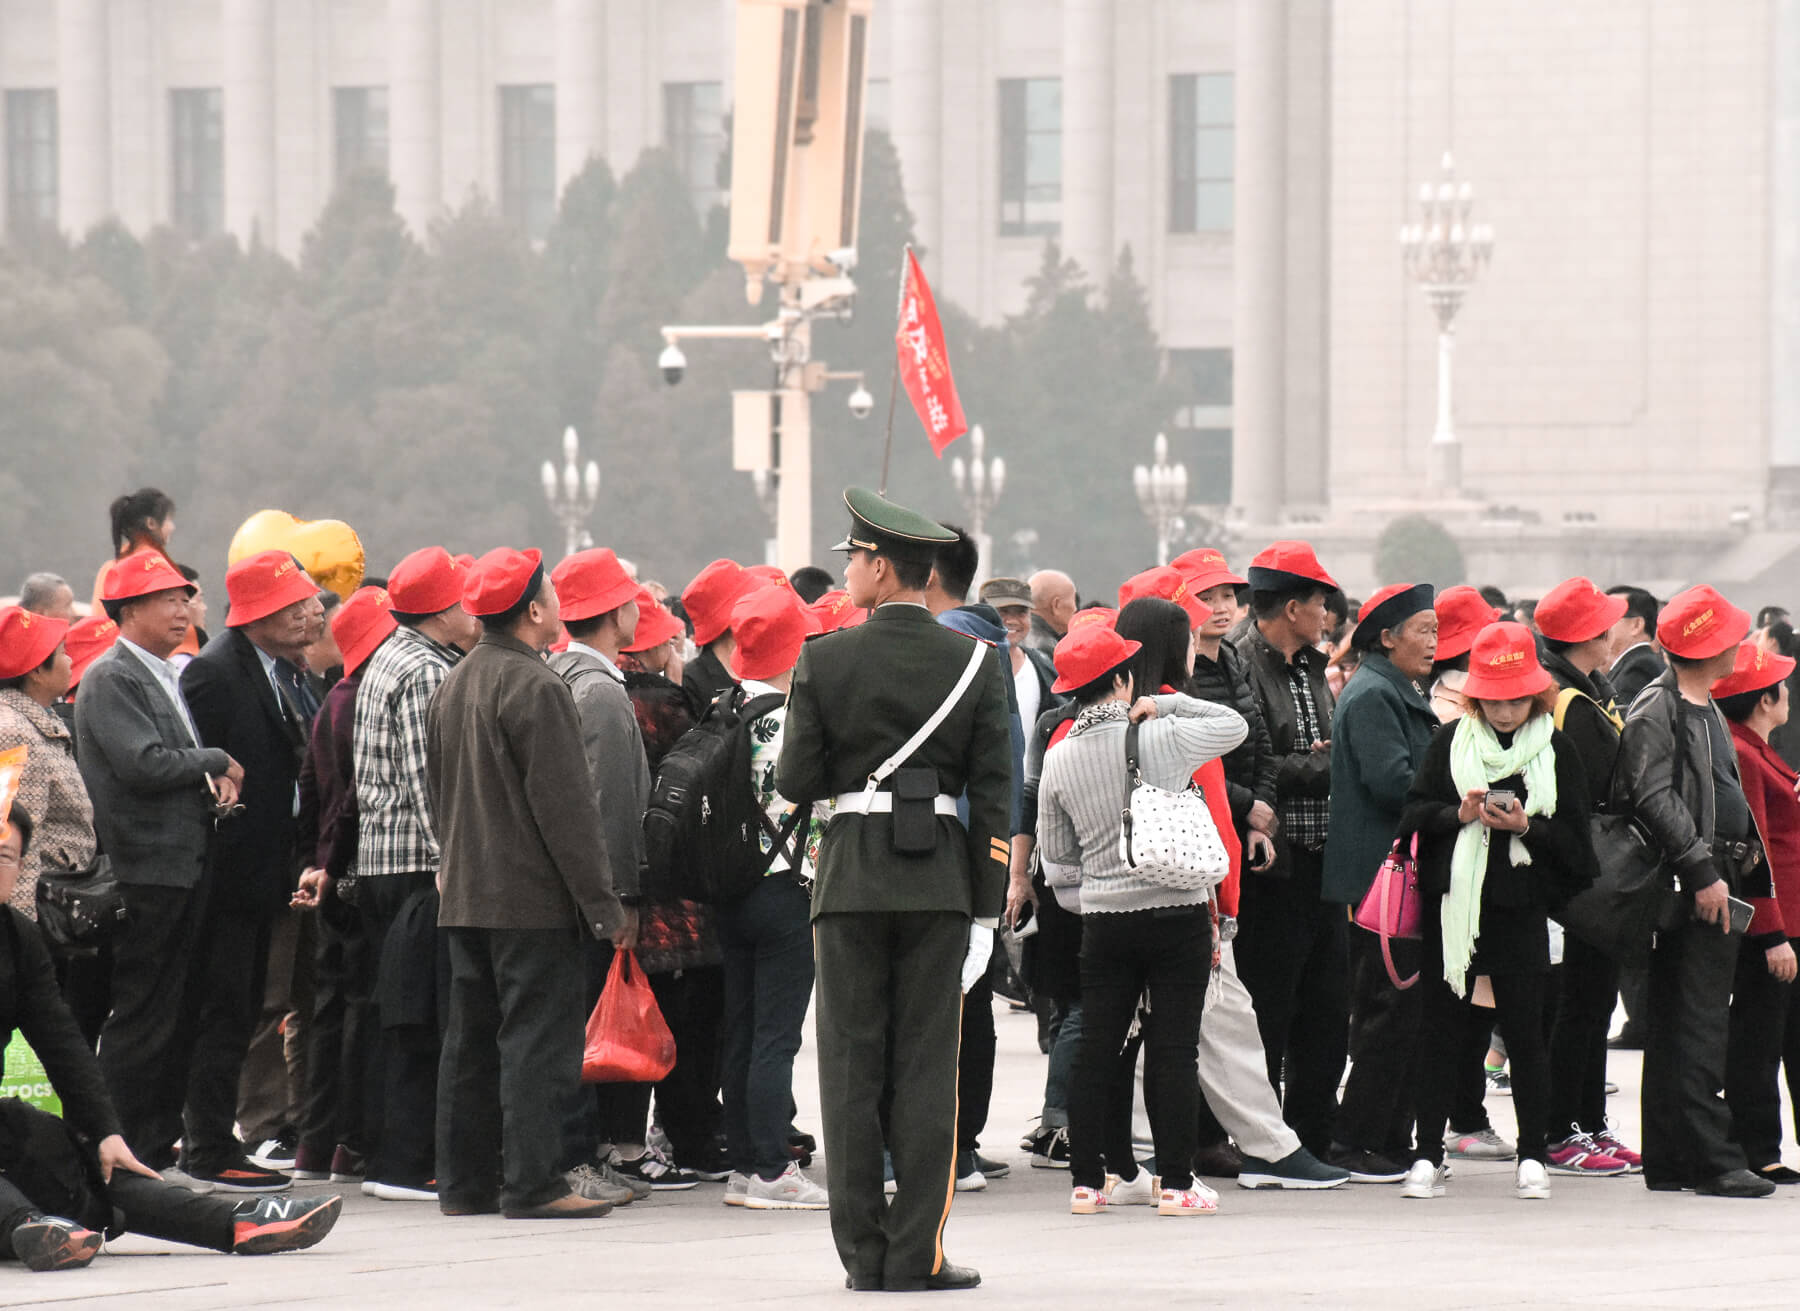 A huge group of Chinese tourists, all wearing matching red hats whilst in Tiananmen square